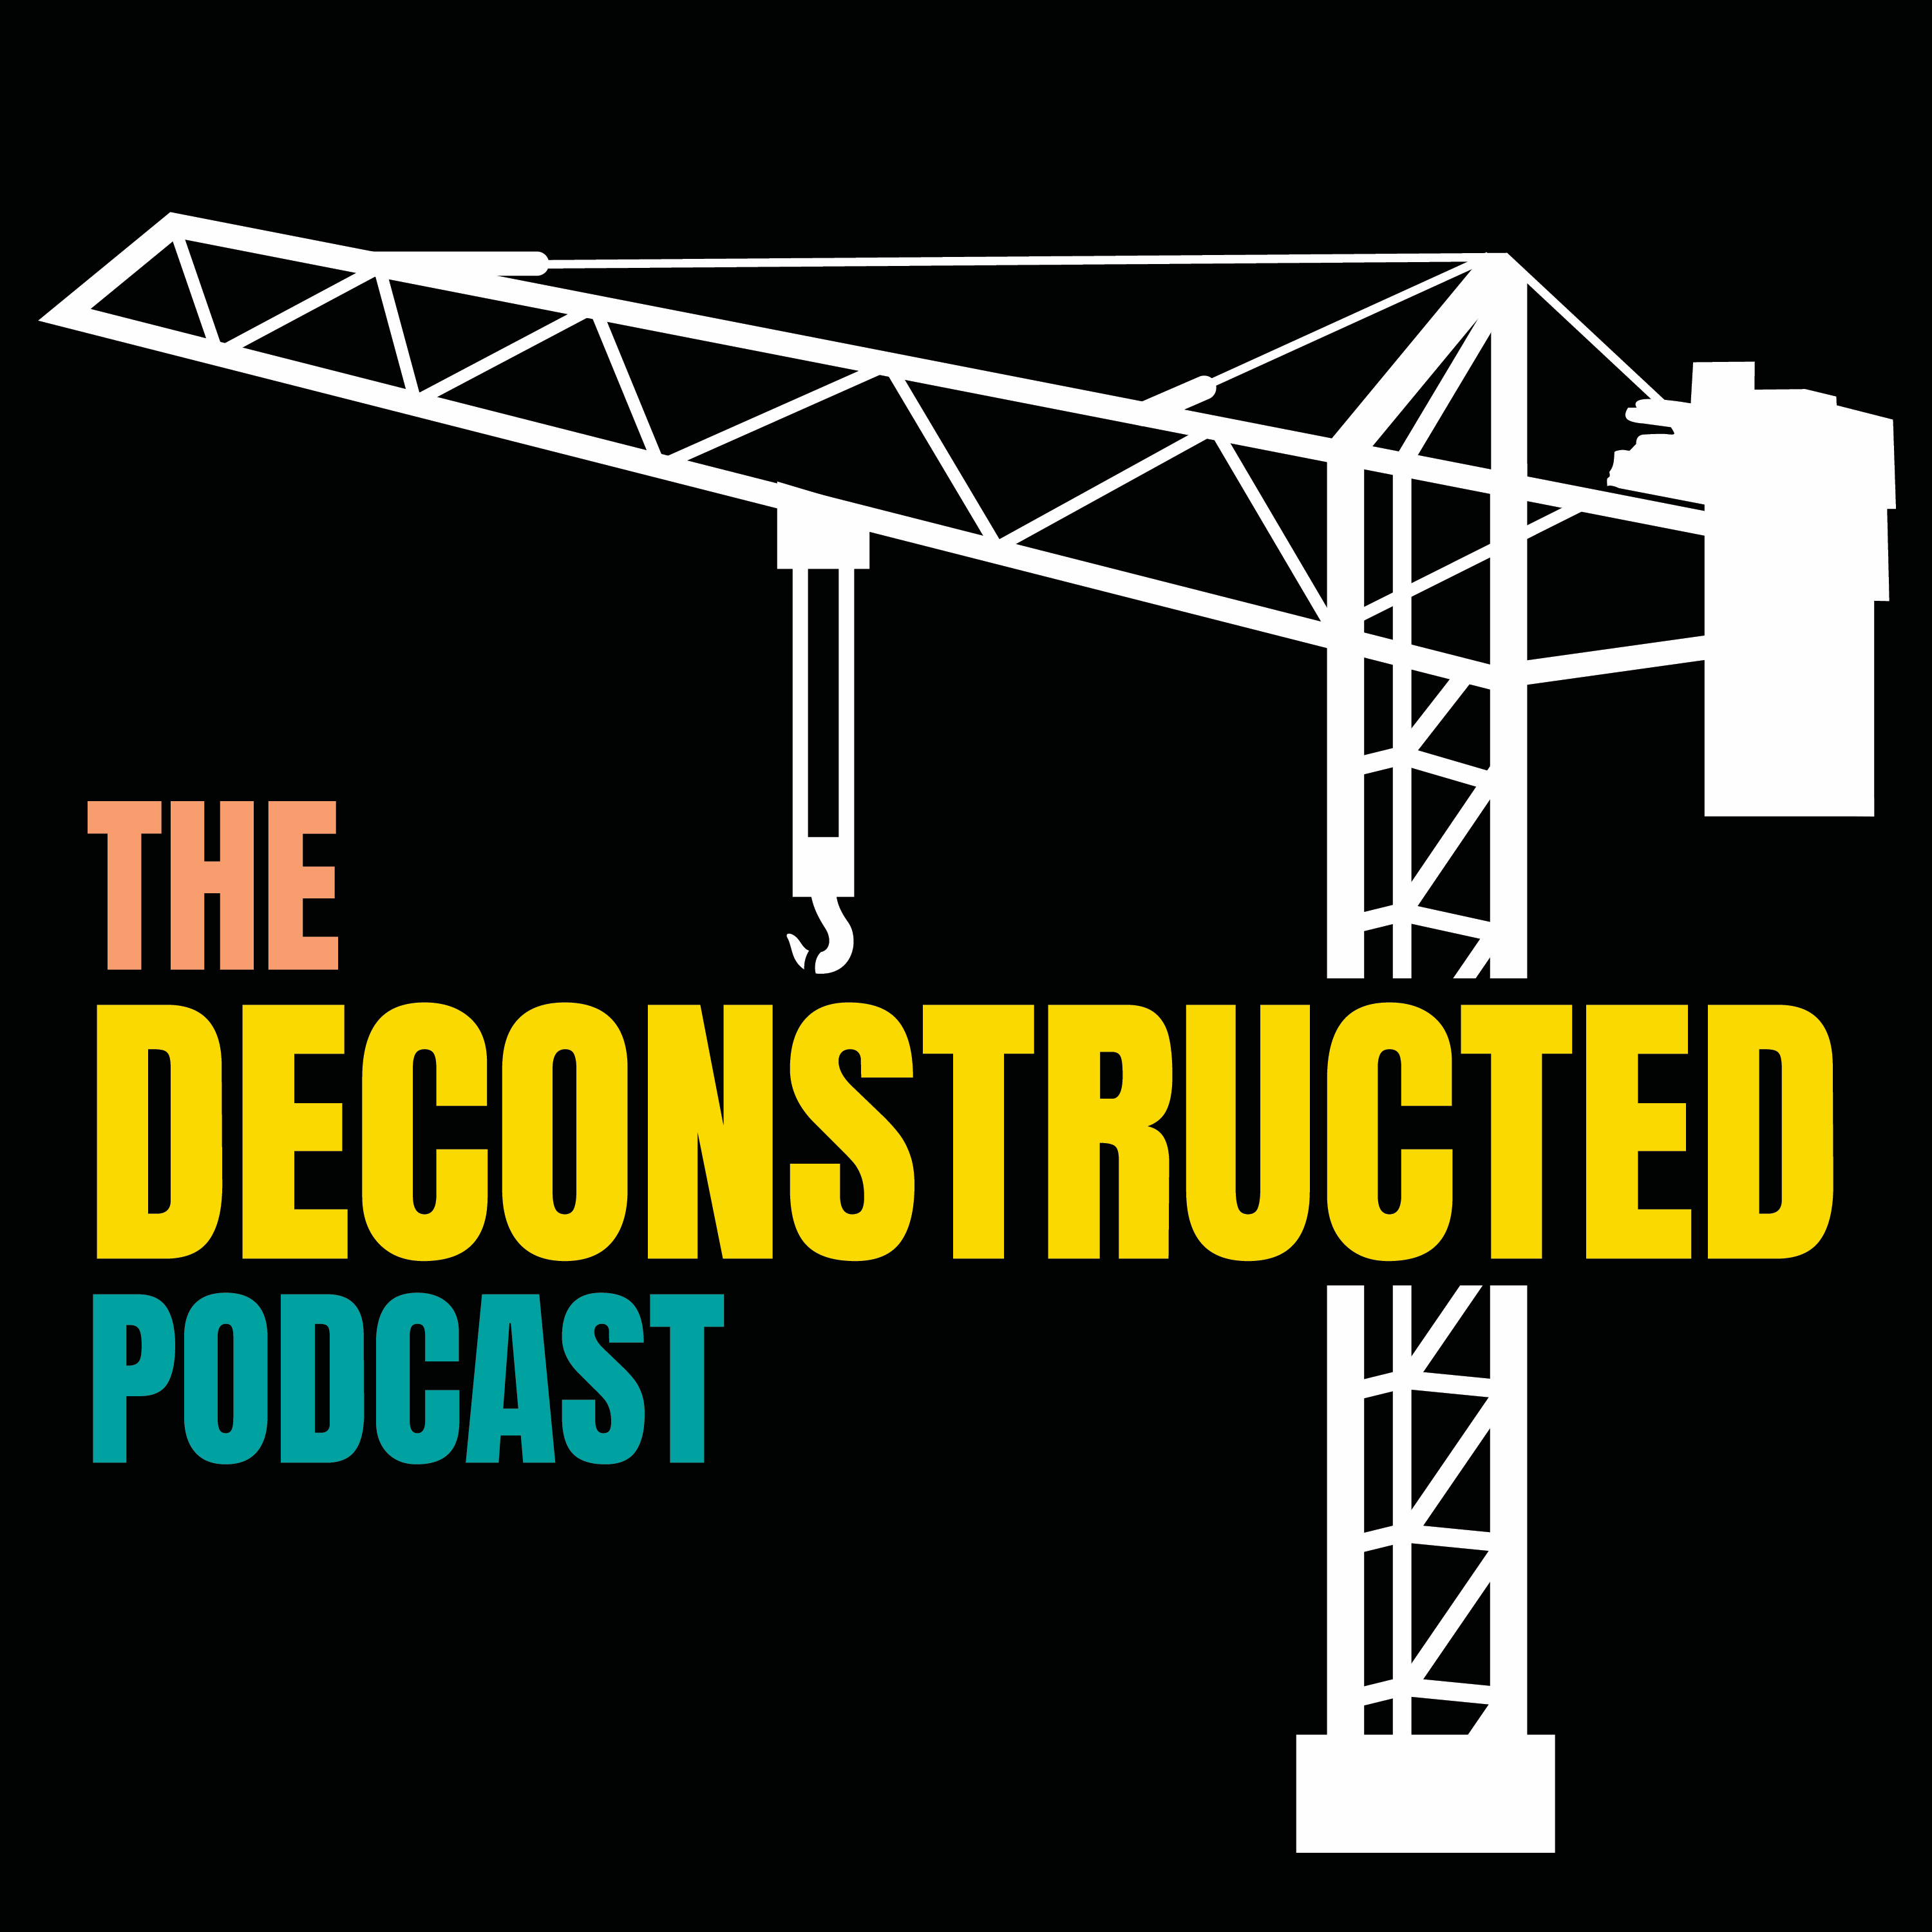 The Deconstructed Podcast